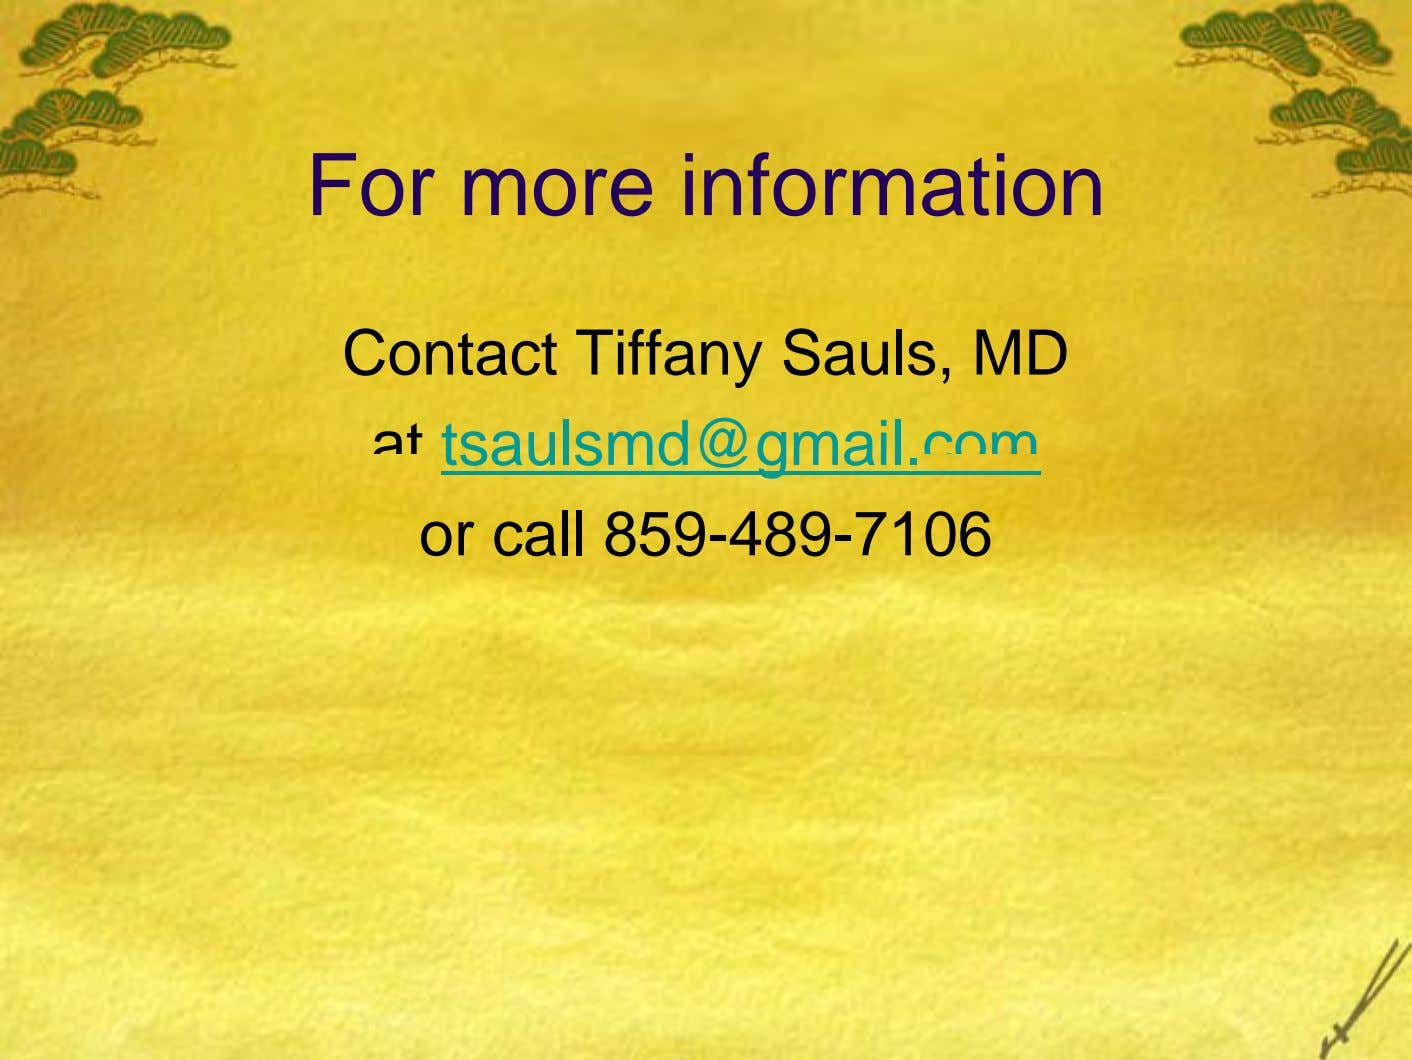 For more information Contact Tiffany Sauls, MD at tsaulsmd@gmail.com or call 859-489-7106